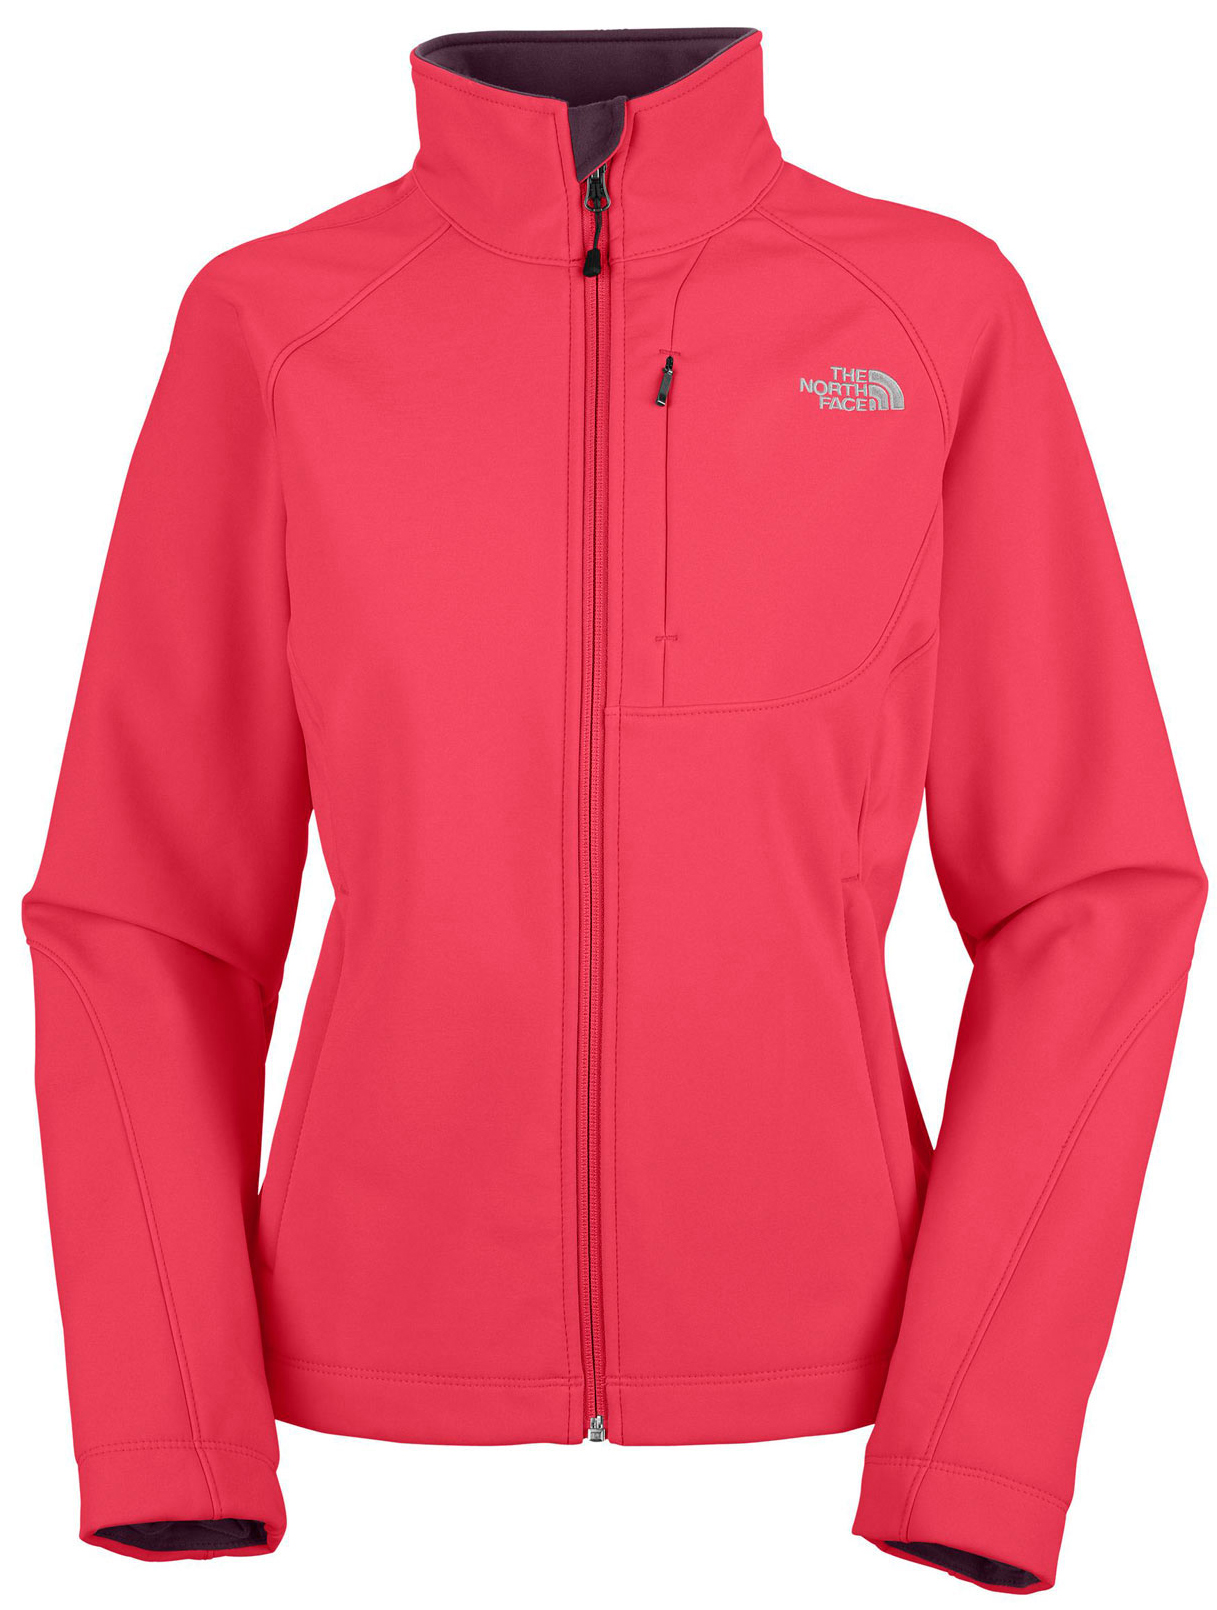 "Four-season, versatile, windproof soft shell with a stretchy, comfortable fit ideal for multiple activities. Key Features of The North Face Apex Bionic Jacket: Avg Weight: 561.59 g (19.81 oz) Center Back: 25.5"" Fabric: 90D 351 g/m2 (10.3 oz/yd2) plain weave polyester TNF Apex ClimateBlock Built for outdoor activities in inclement weather, this lightweight soft shell is lightly insulated with a soft, comfortable Silken fleece lining. Standard fit TNF Apex ClimateBlock fabric wind permeability rated at 0 CFM Fleece backer Napoleon chest pocket Two hand pockets Internal stretch comfort cuffs - $111.95"